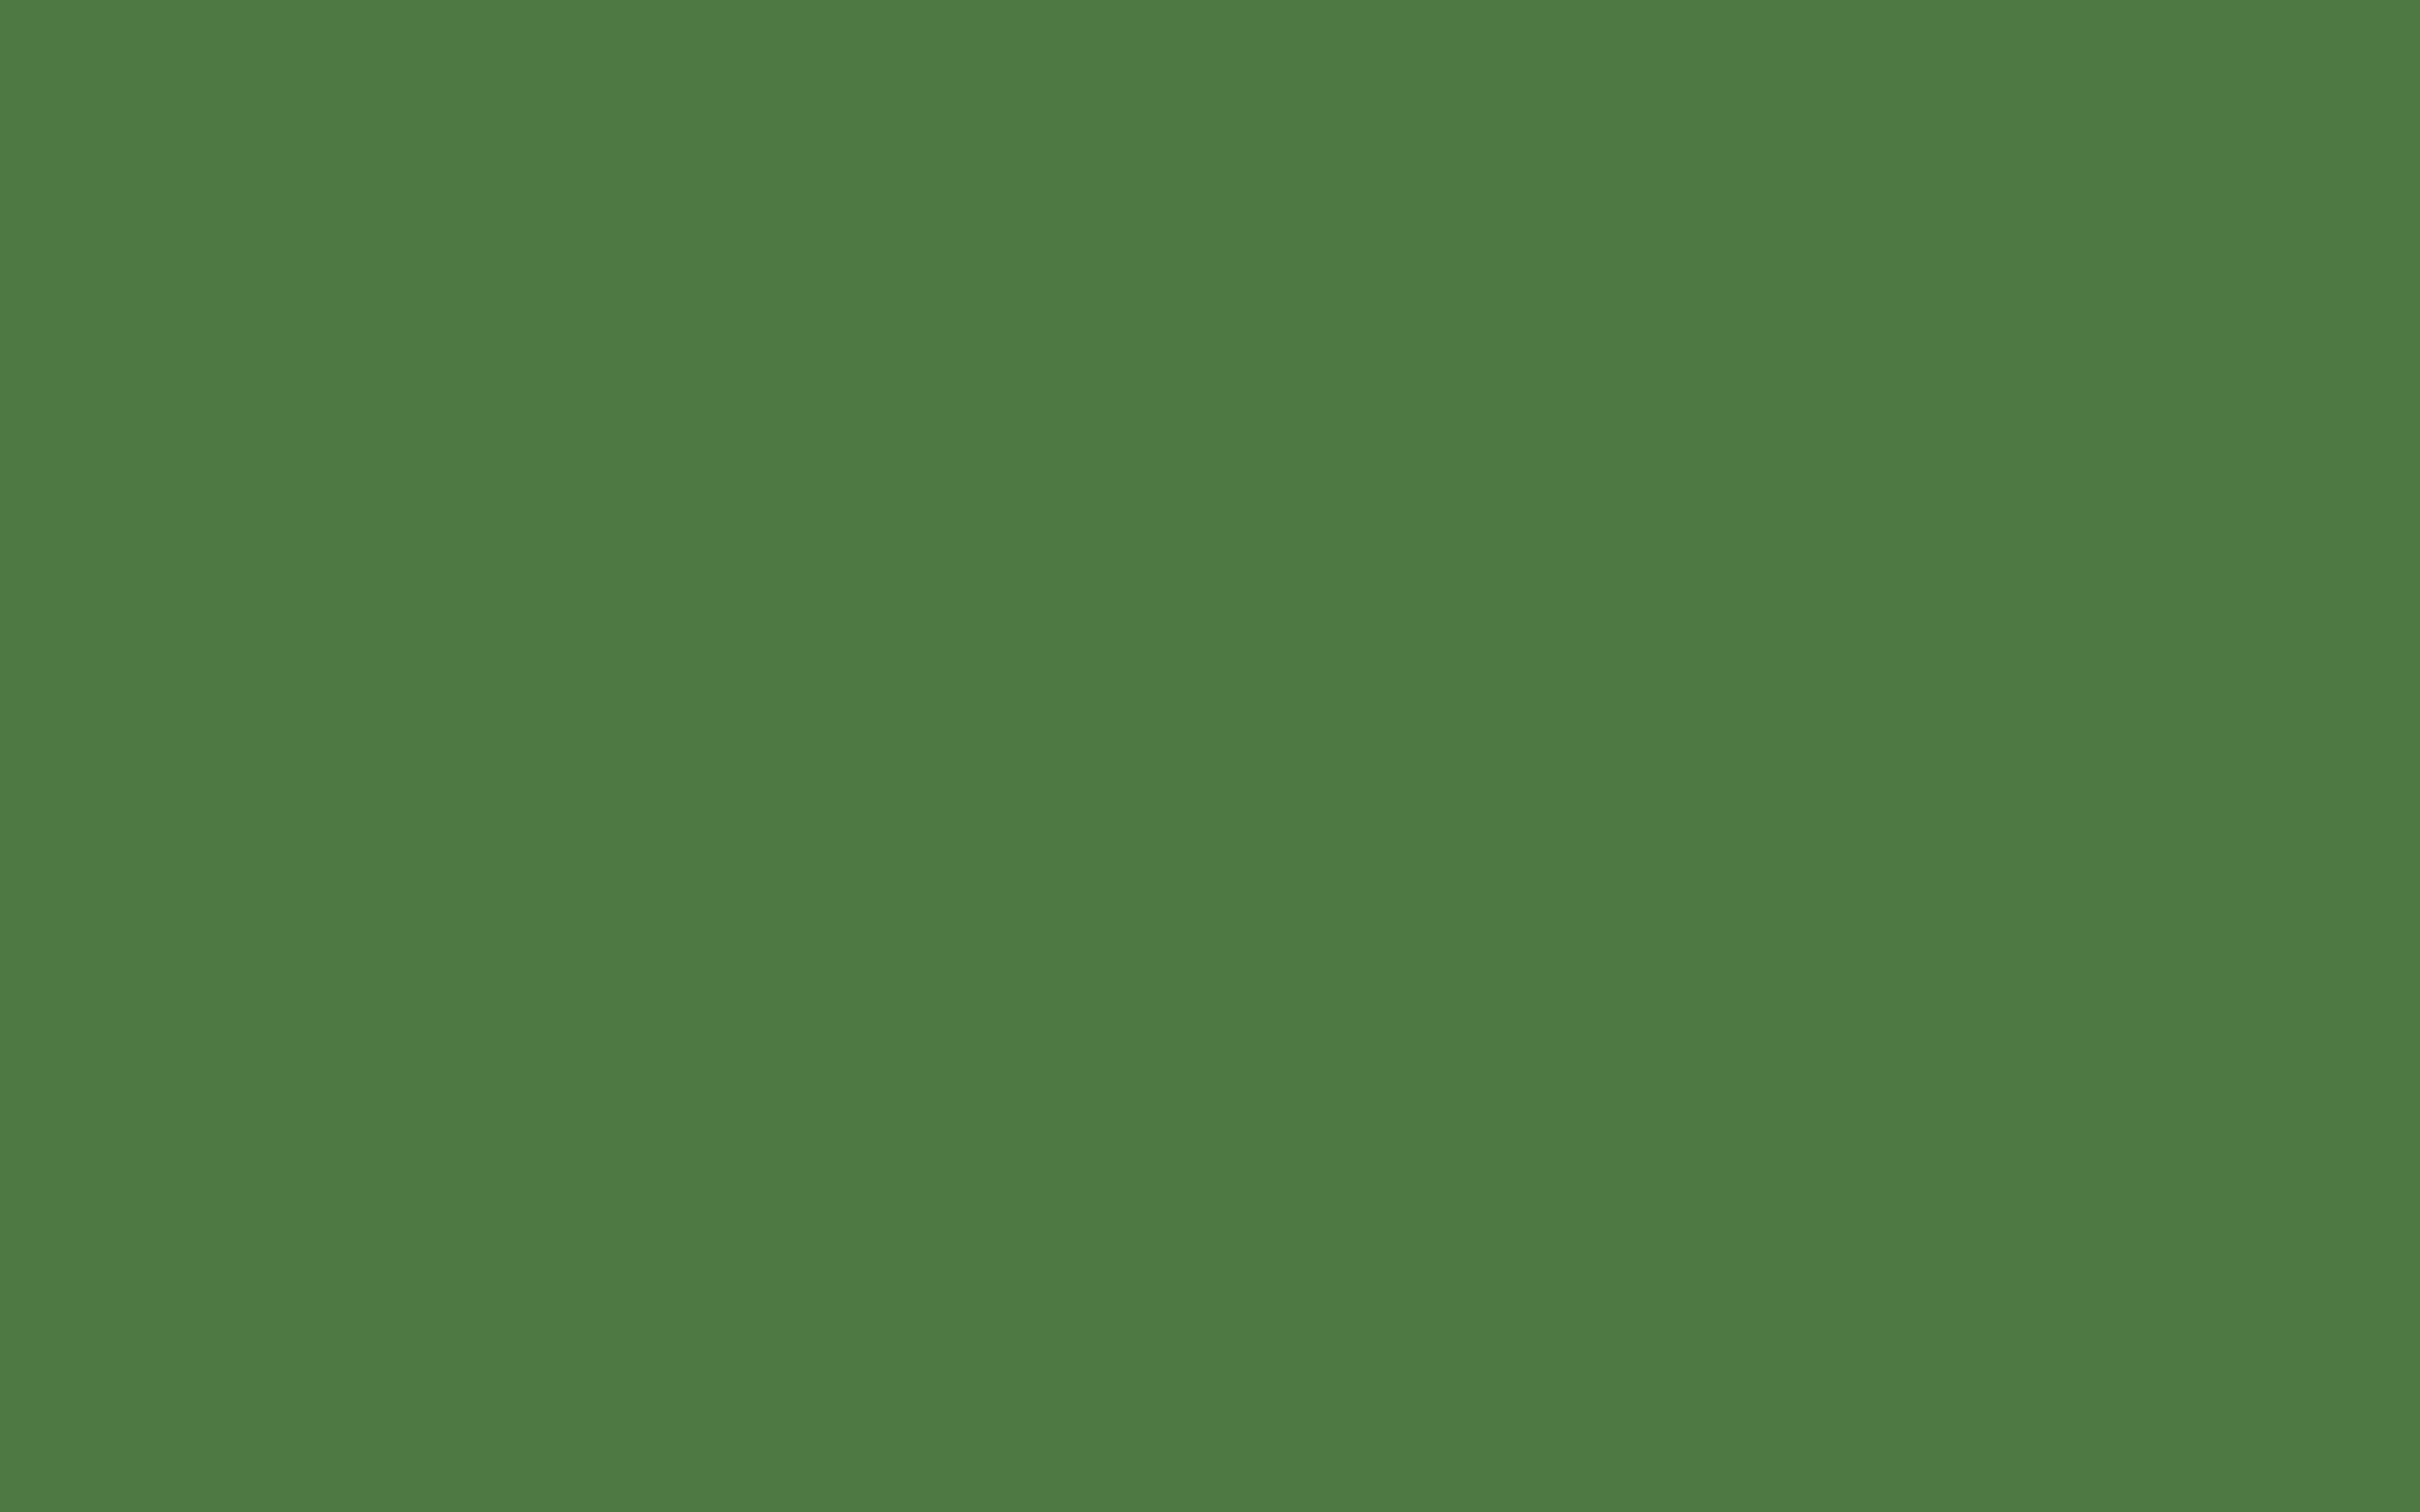 2880x1800 Fern Green Solid Color Background